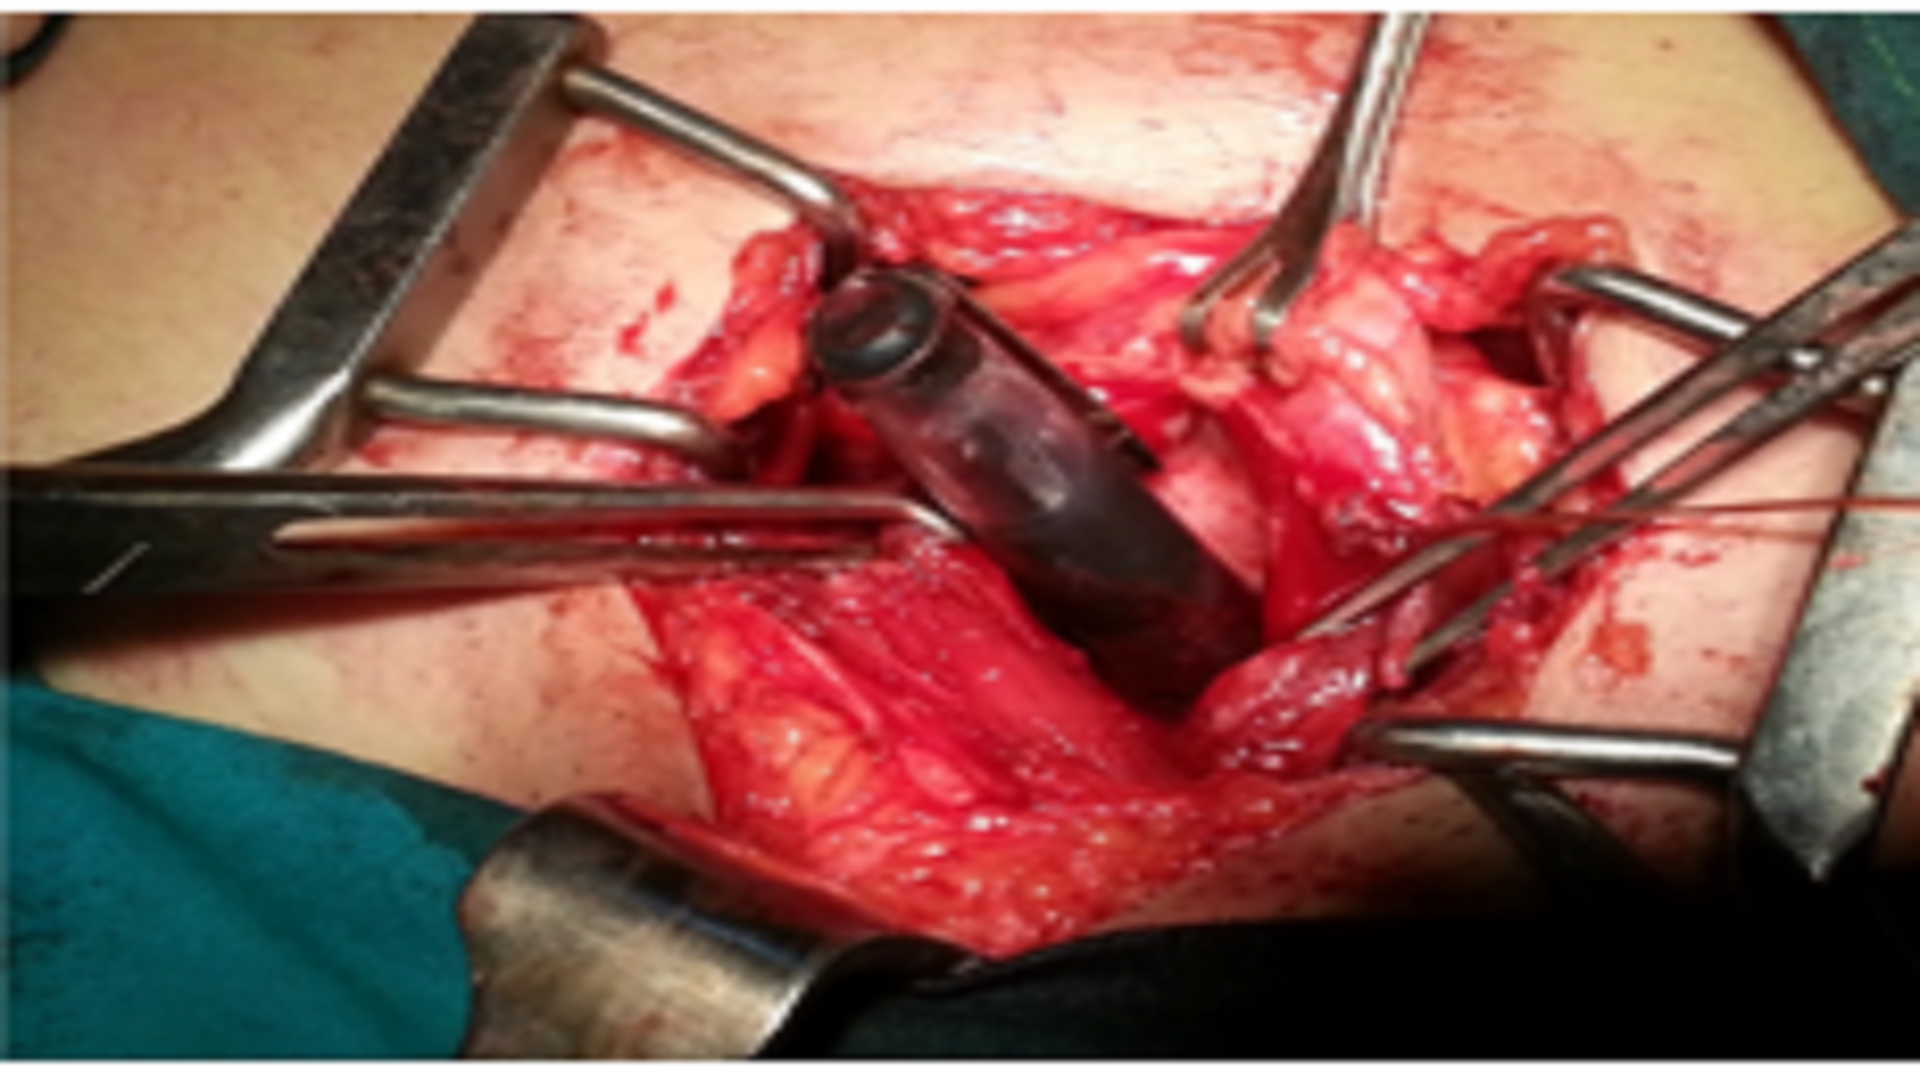 Intravesical Foreign Body Causing Acute Urinary Retention: A Case Report